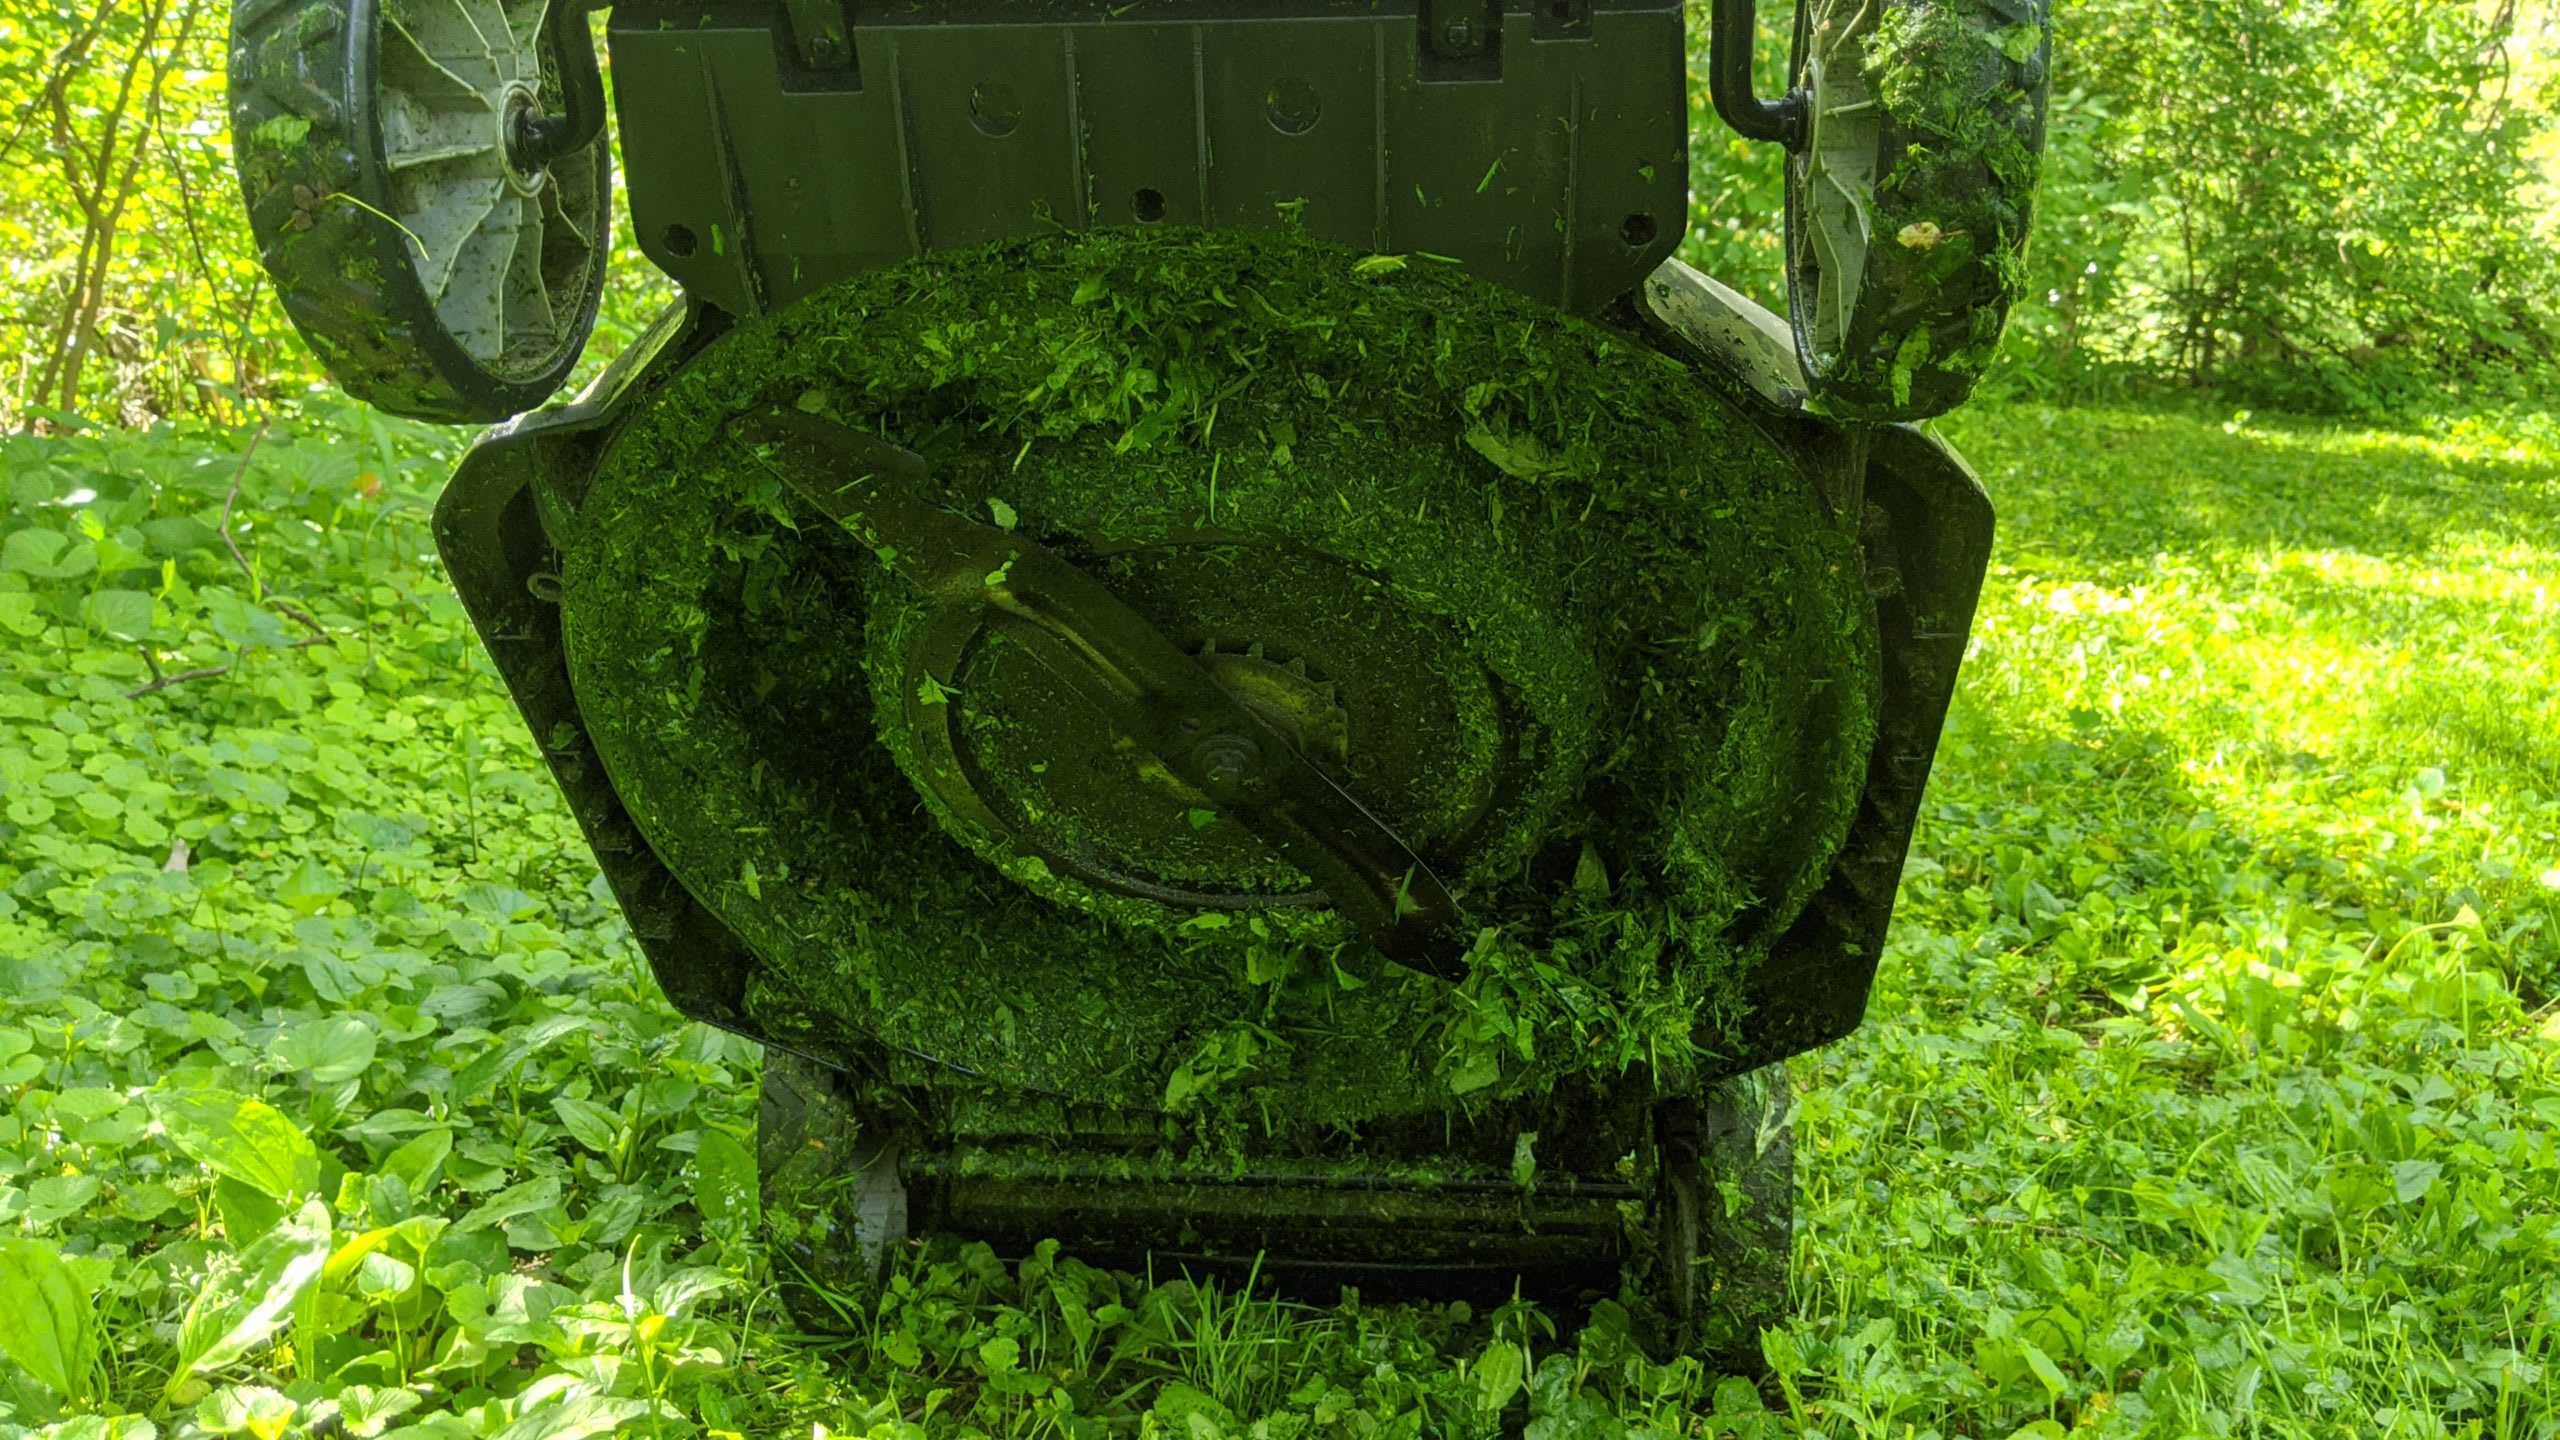 EGO LM2002 electric mower - underside with grass after wet cut